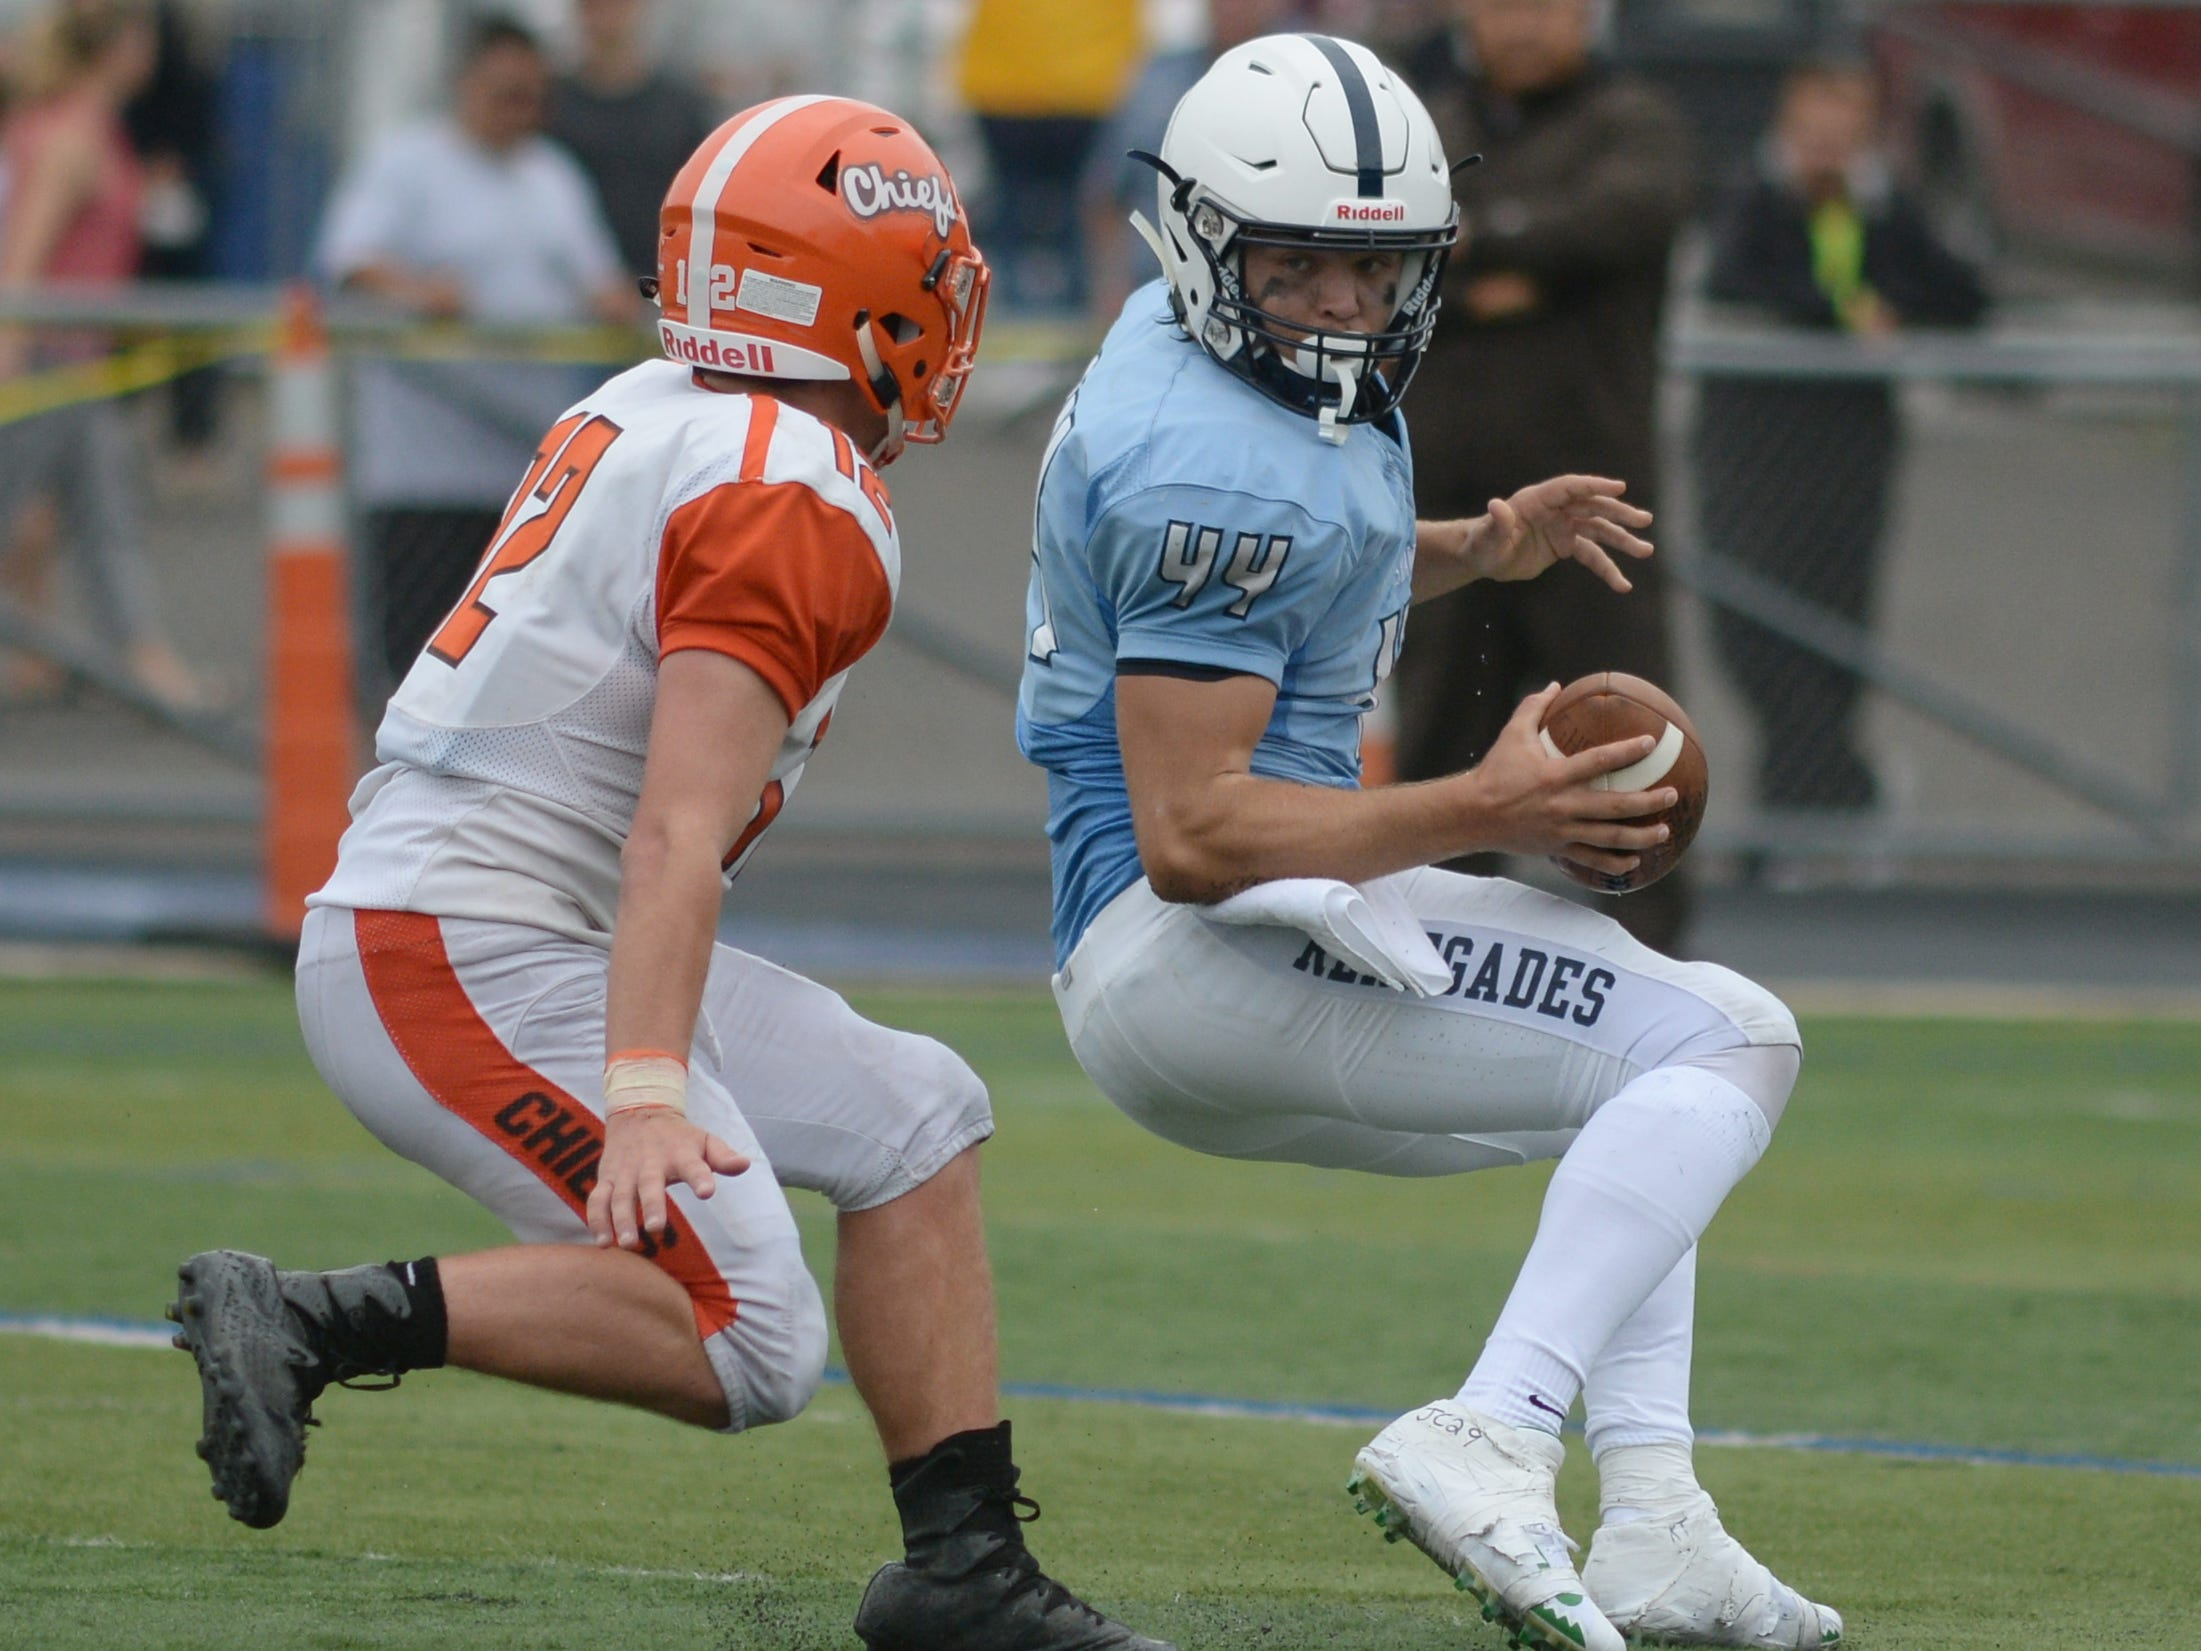 Shawnee's quarterback Joe Dalsey avoids being sacked by Cherokee's Andy Walters during Saturday's football game at Shawnee High School,  Sept. 8, 2018.